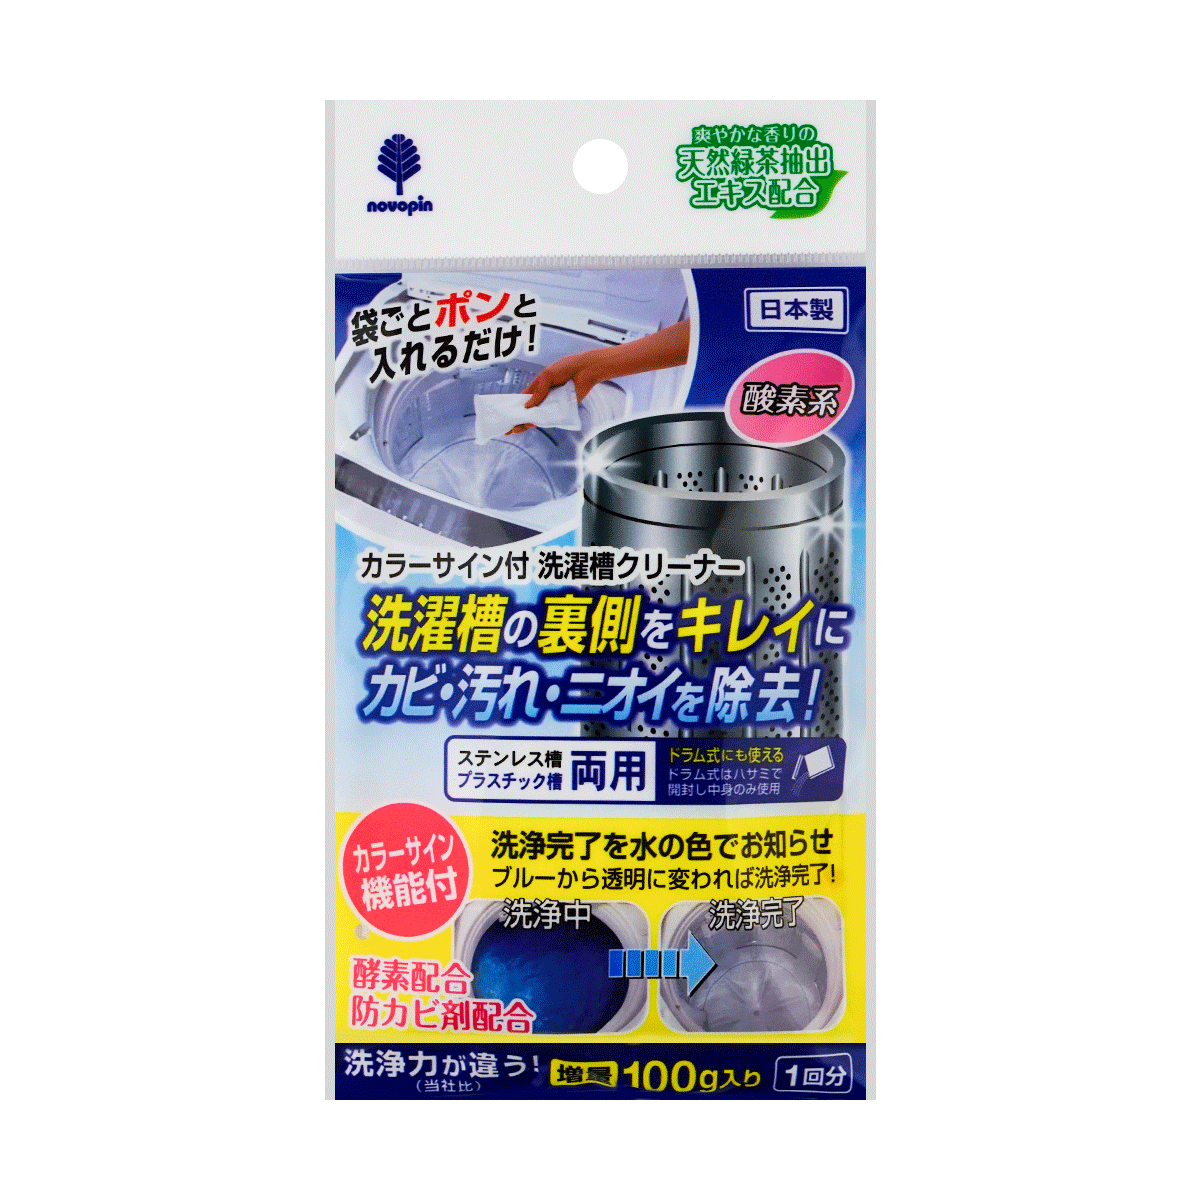 Yamibuy.com:Customer reviews:Japan Kokubo Laundry Tank Cleaner Cleaning Agent for Washing Tub 100g